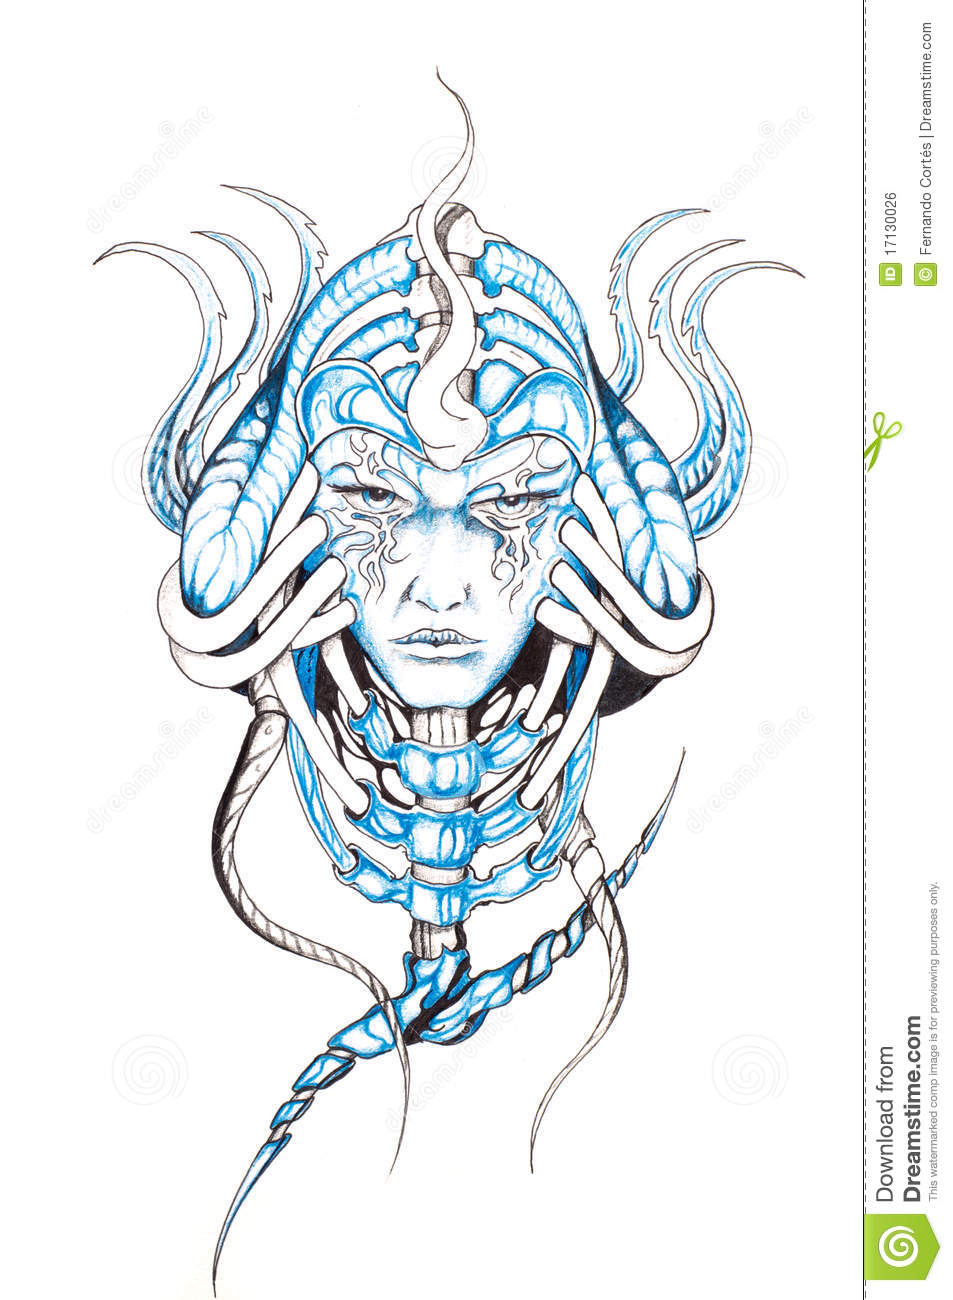 Tattoo Art Sketch Of A Monster Stock Illustration Ideas And Designs